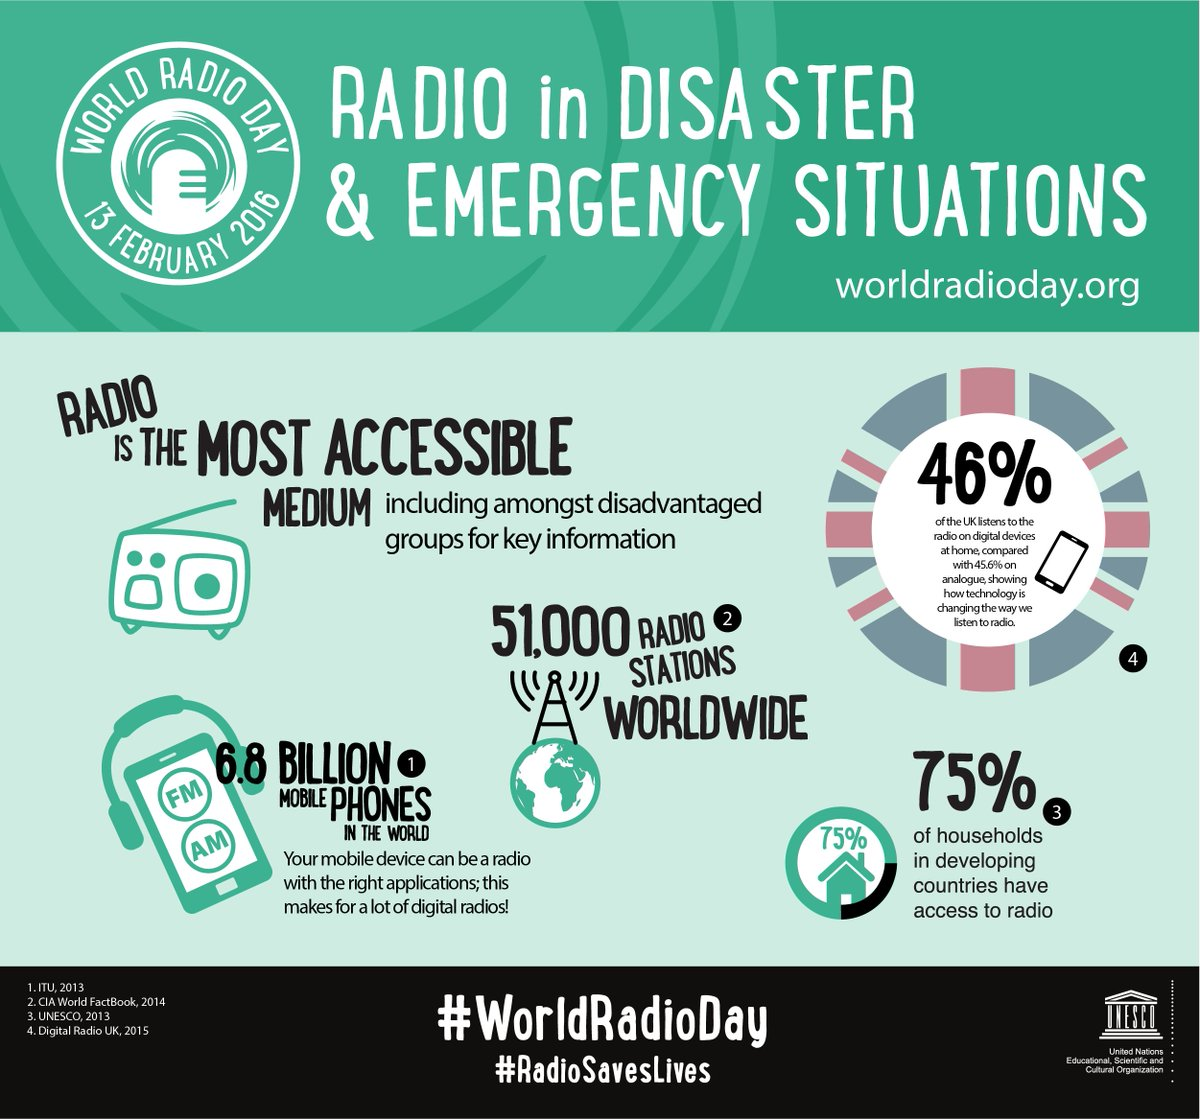 Delivering #education in remote areas is hard- #radio helps bridge the divide #WorldRadioDay https://t.co/BxHReqTVpQ https://t.co/ve96JH5vaO